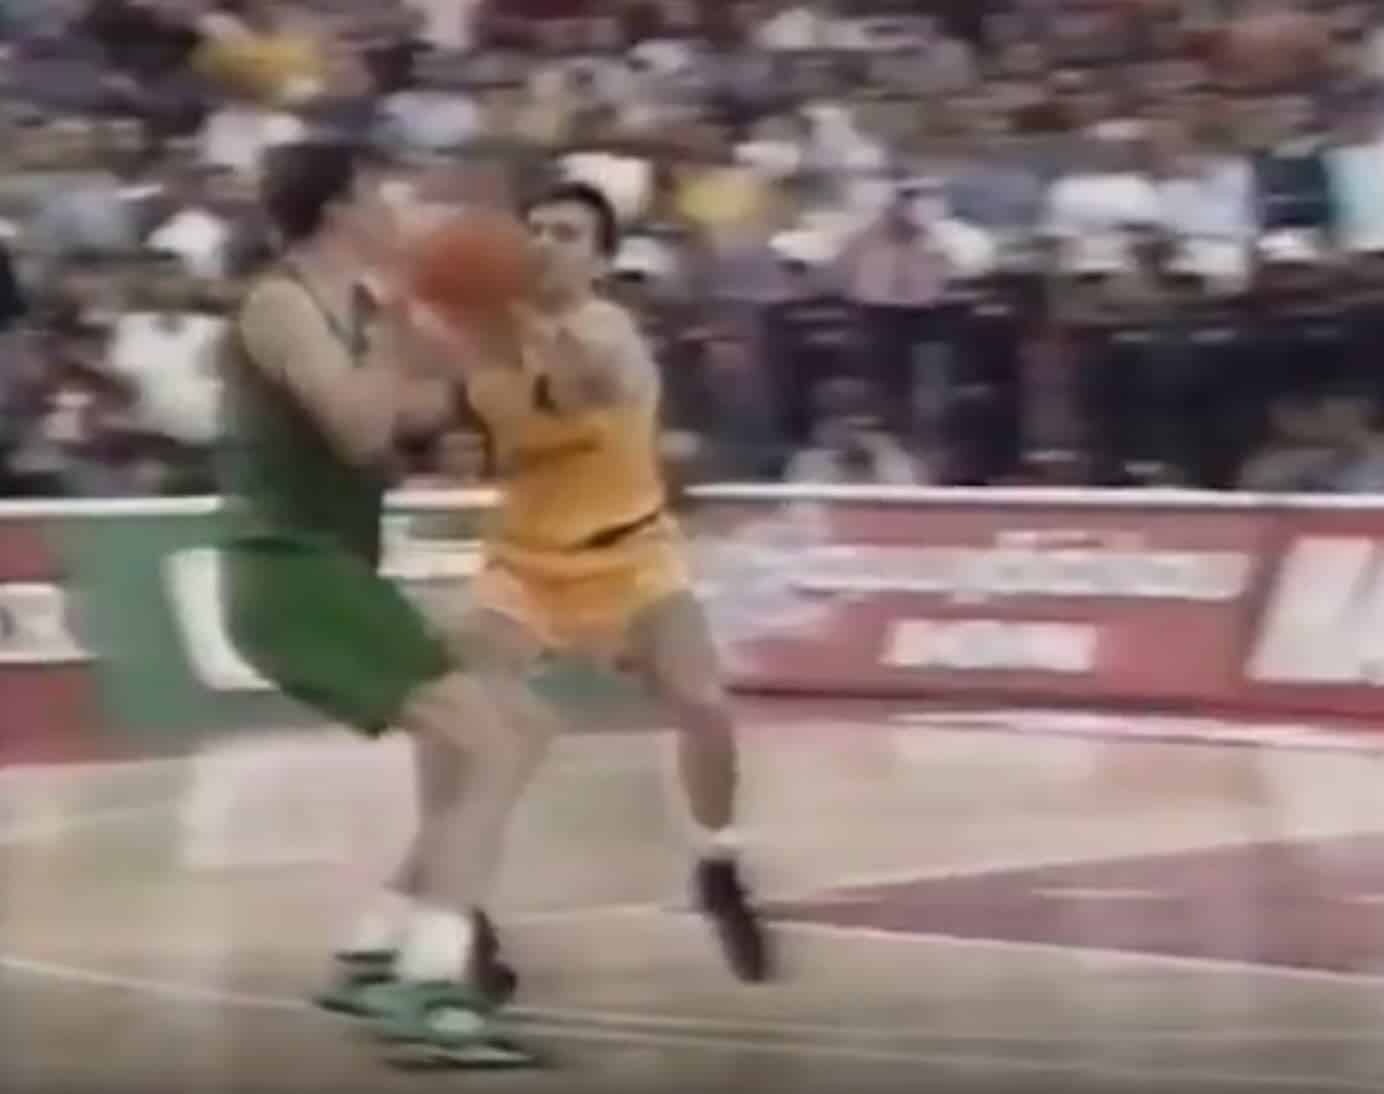 Fred Forte, son interception culte sur Kukoc en 93